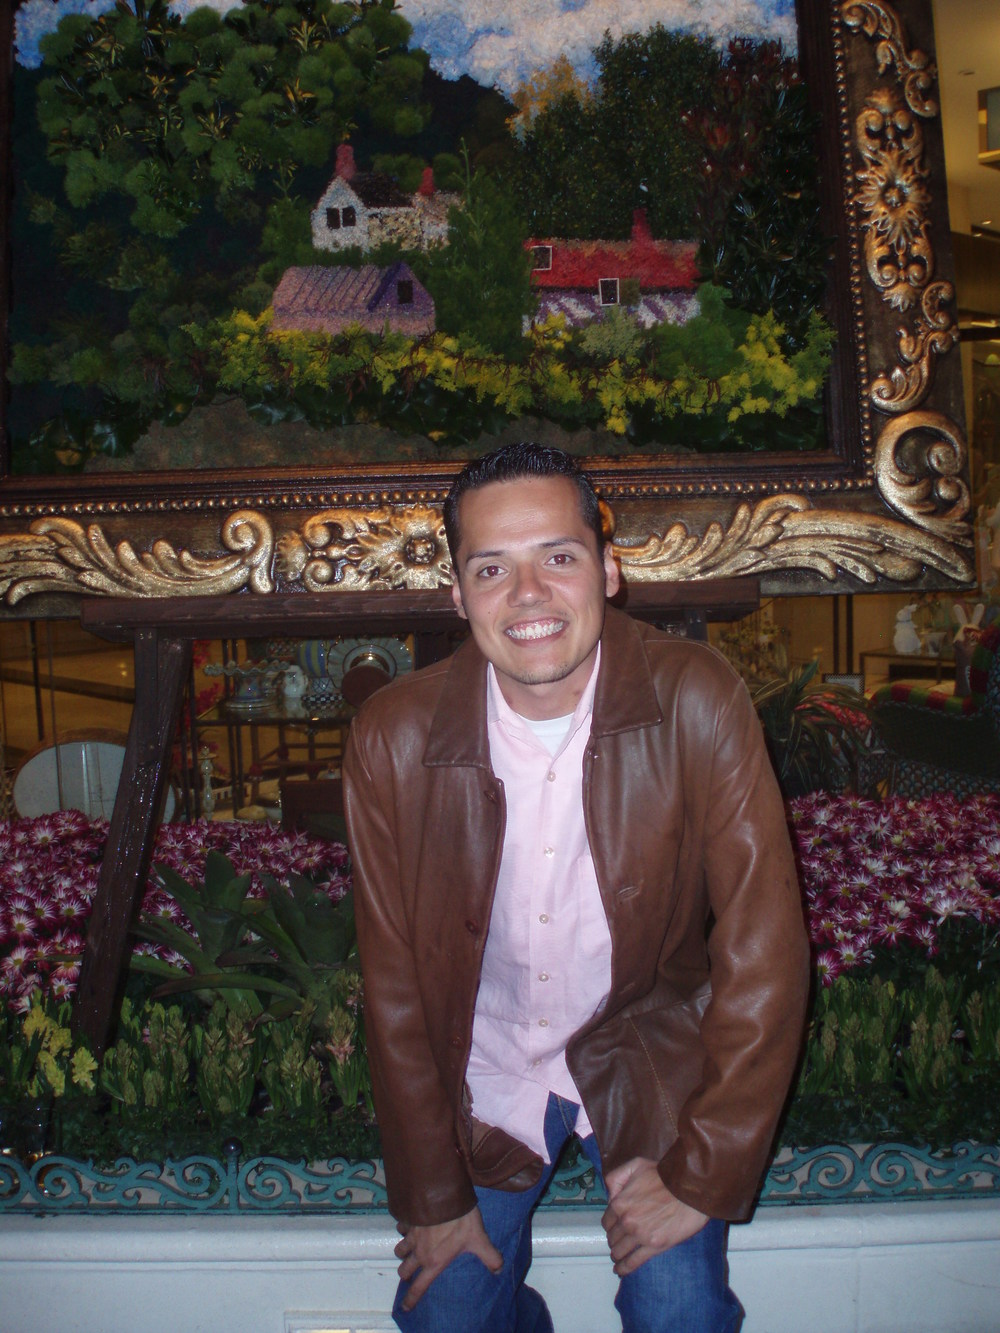 Miguel at the Bellagio hotel, Las Vegas